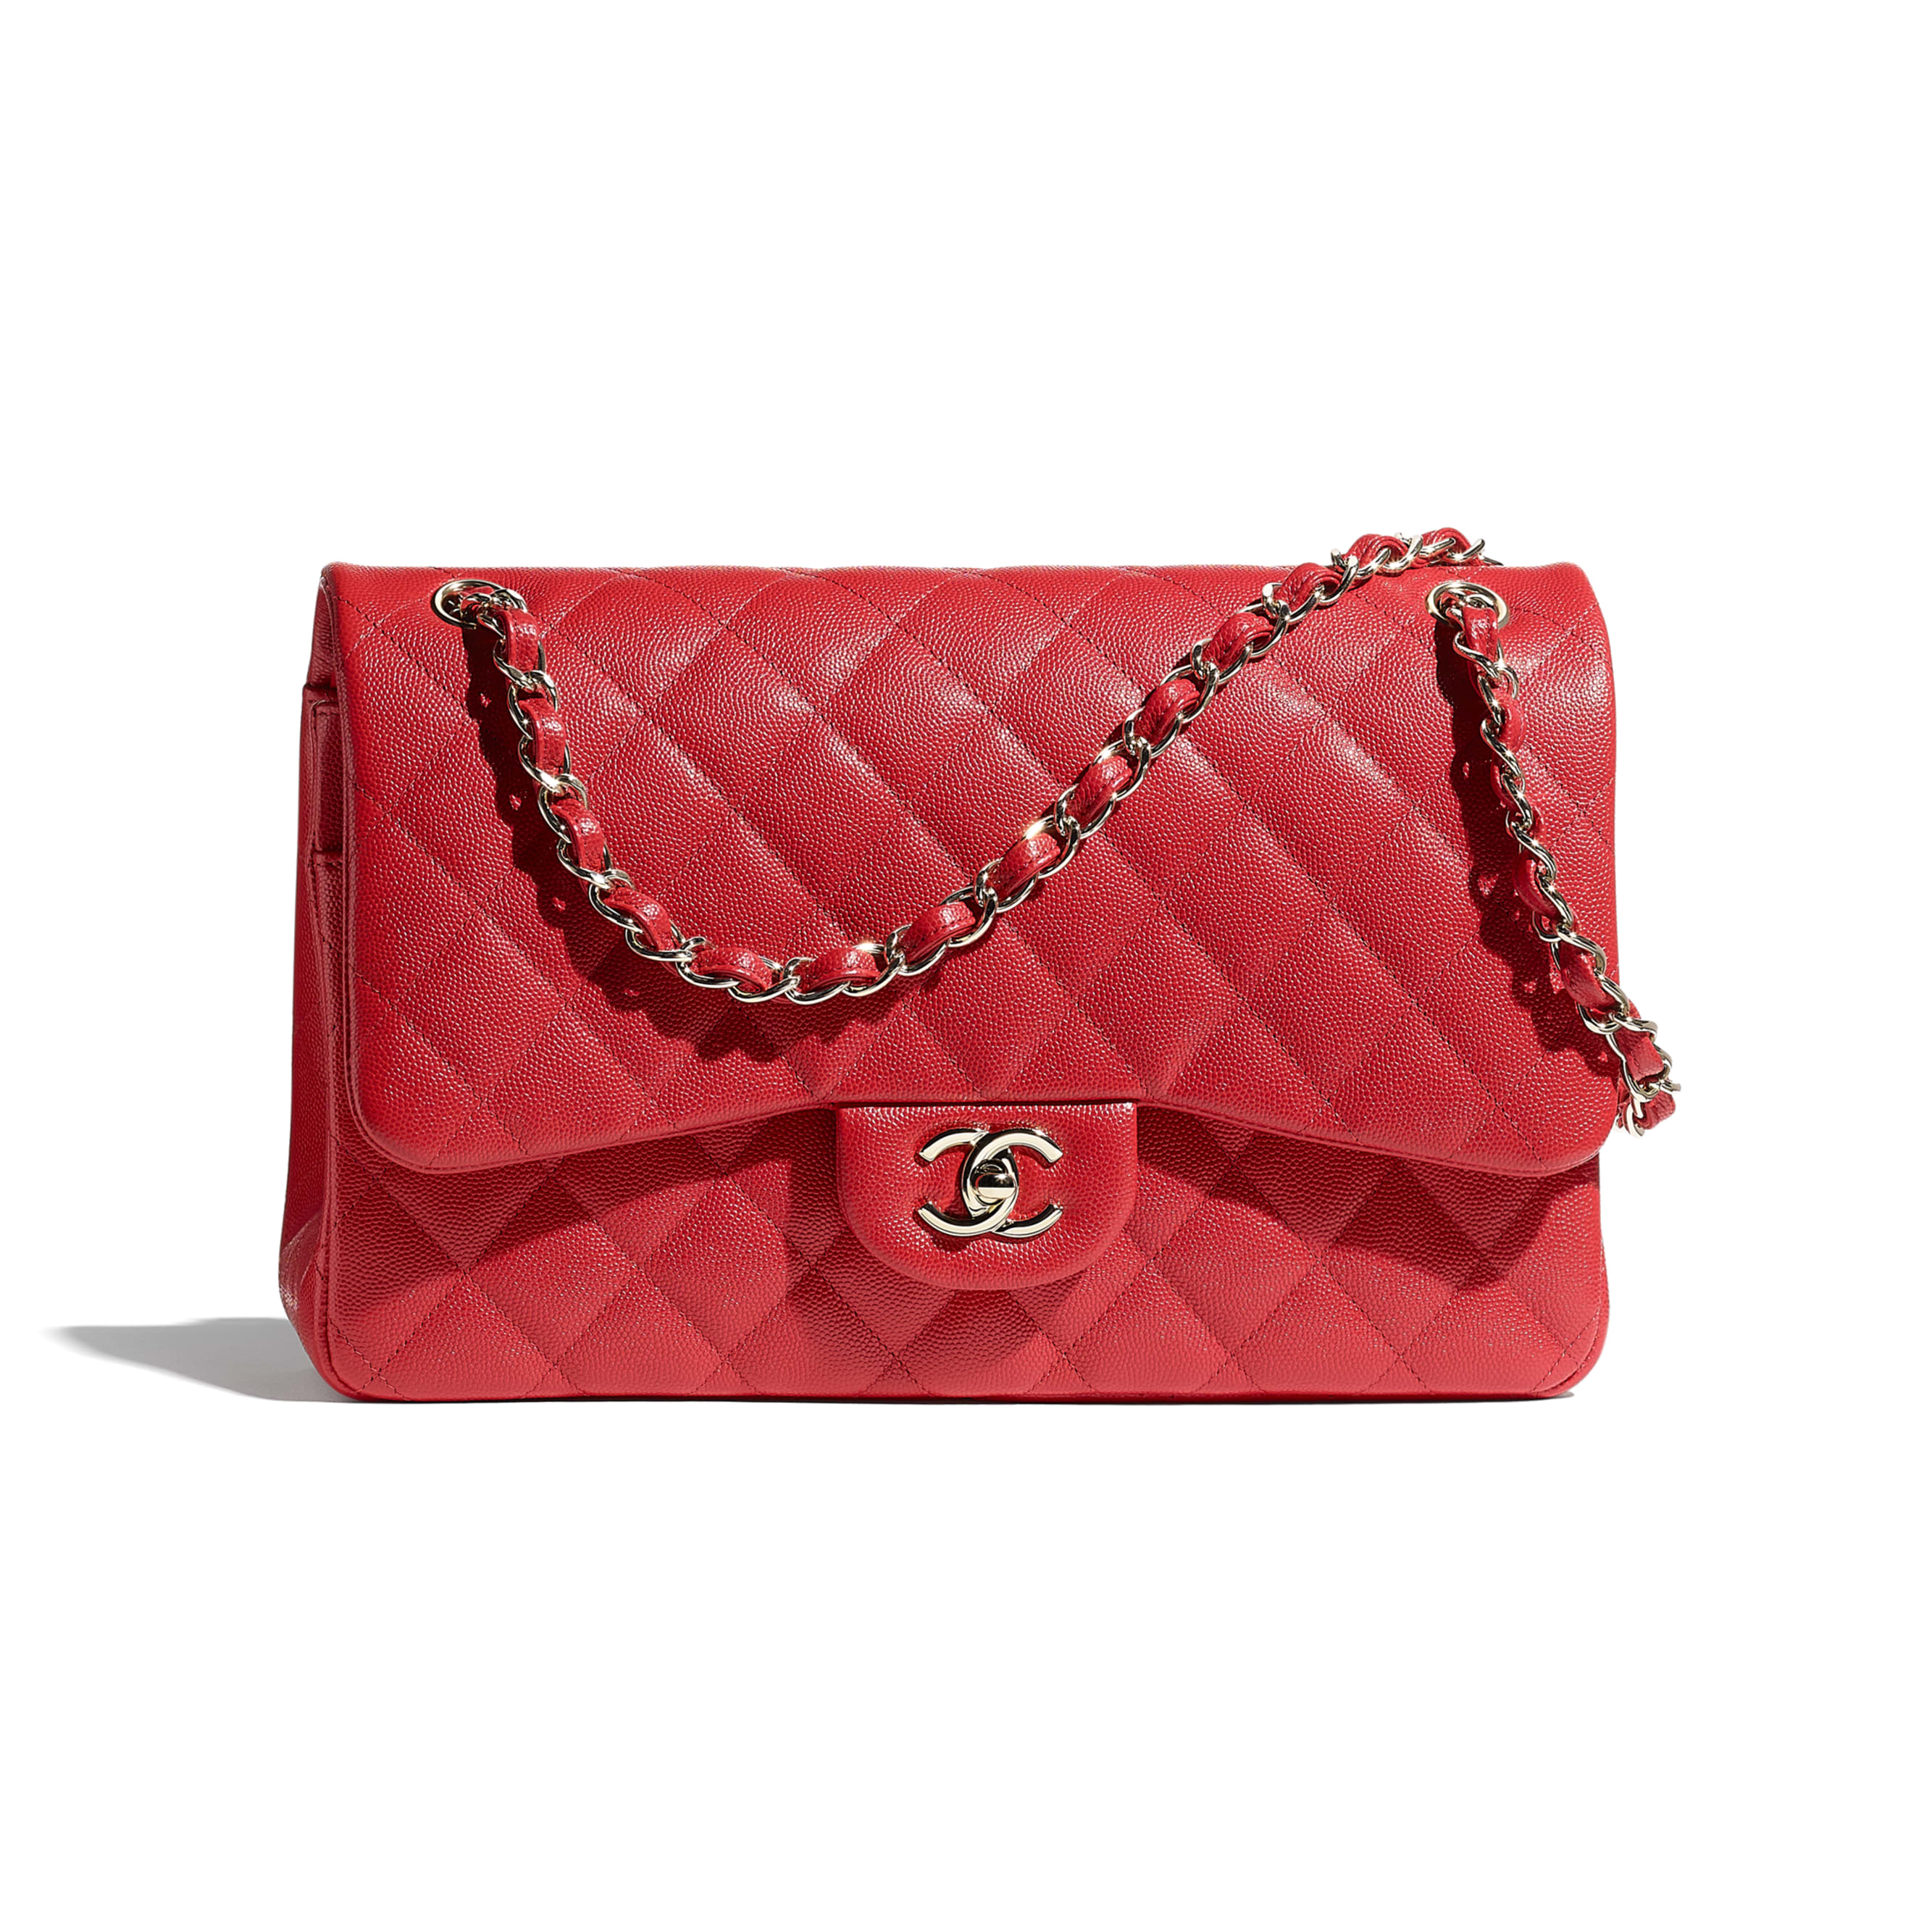 Large Classic Handbag - Red - Grained Calfskin & Gold-Tone Metal - CHANEL - Default view - see standard sized version